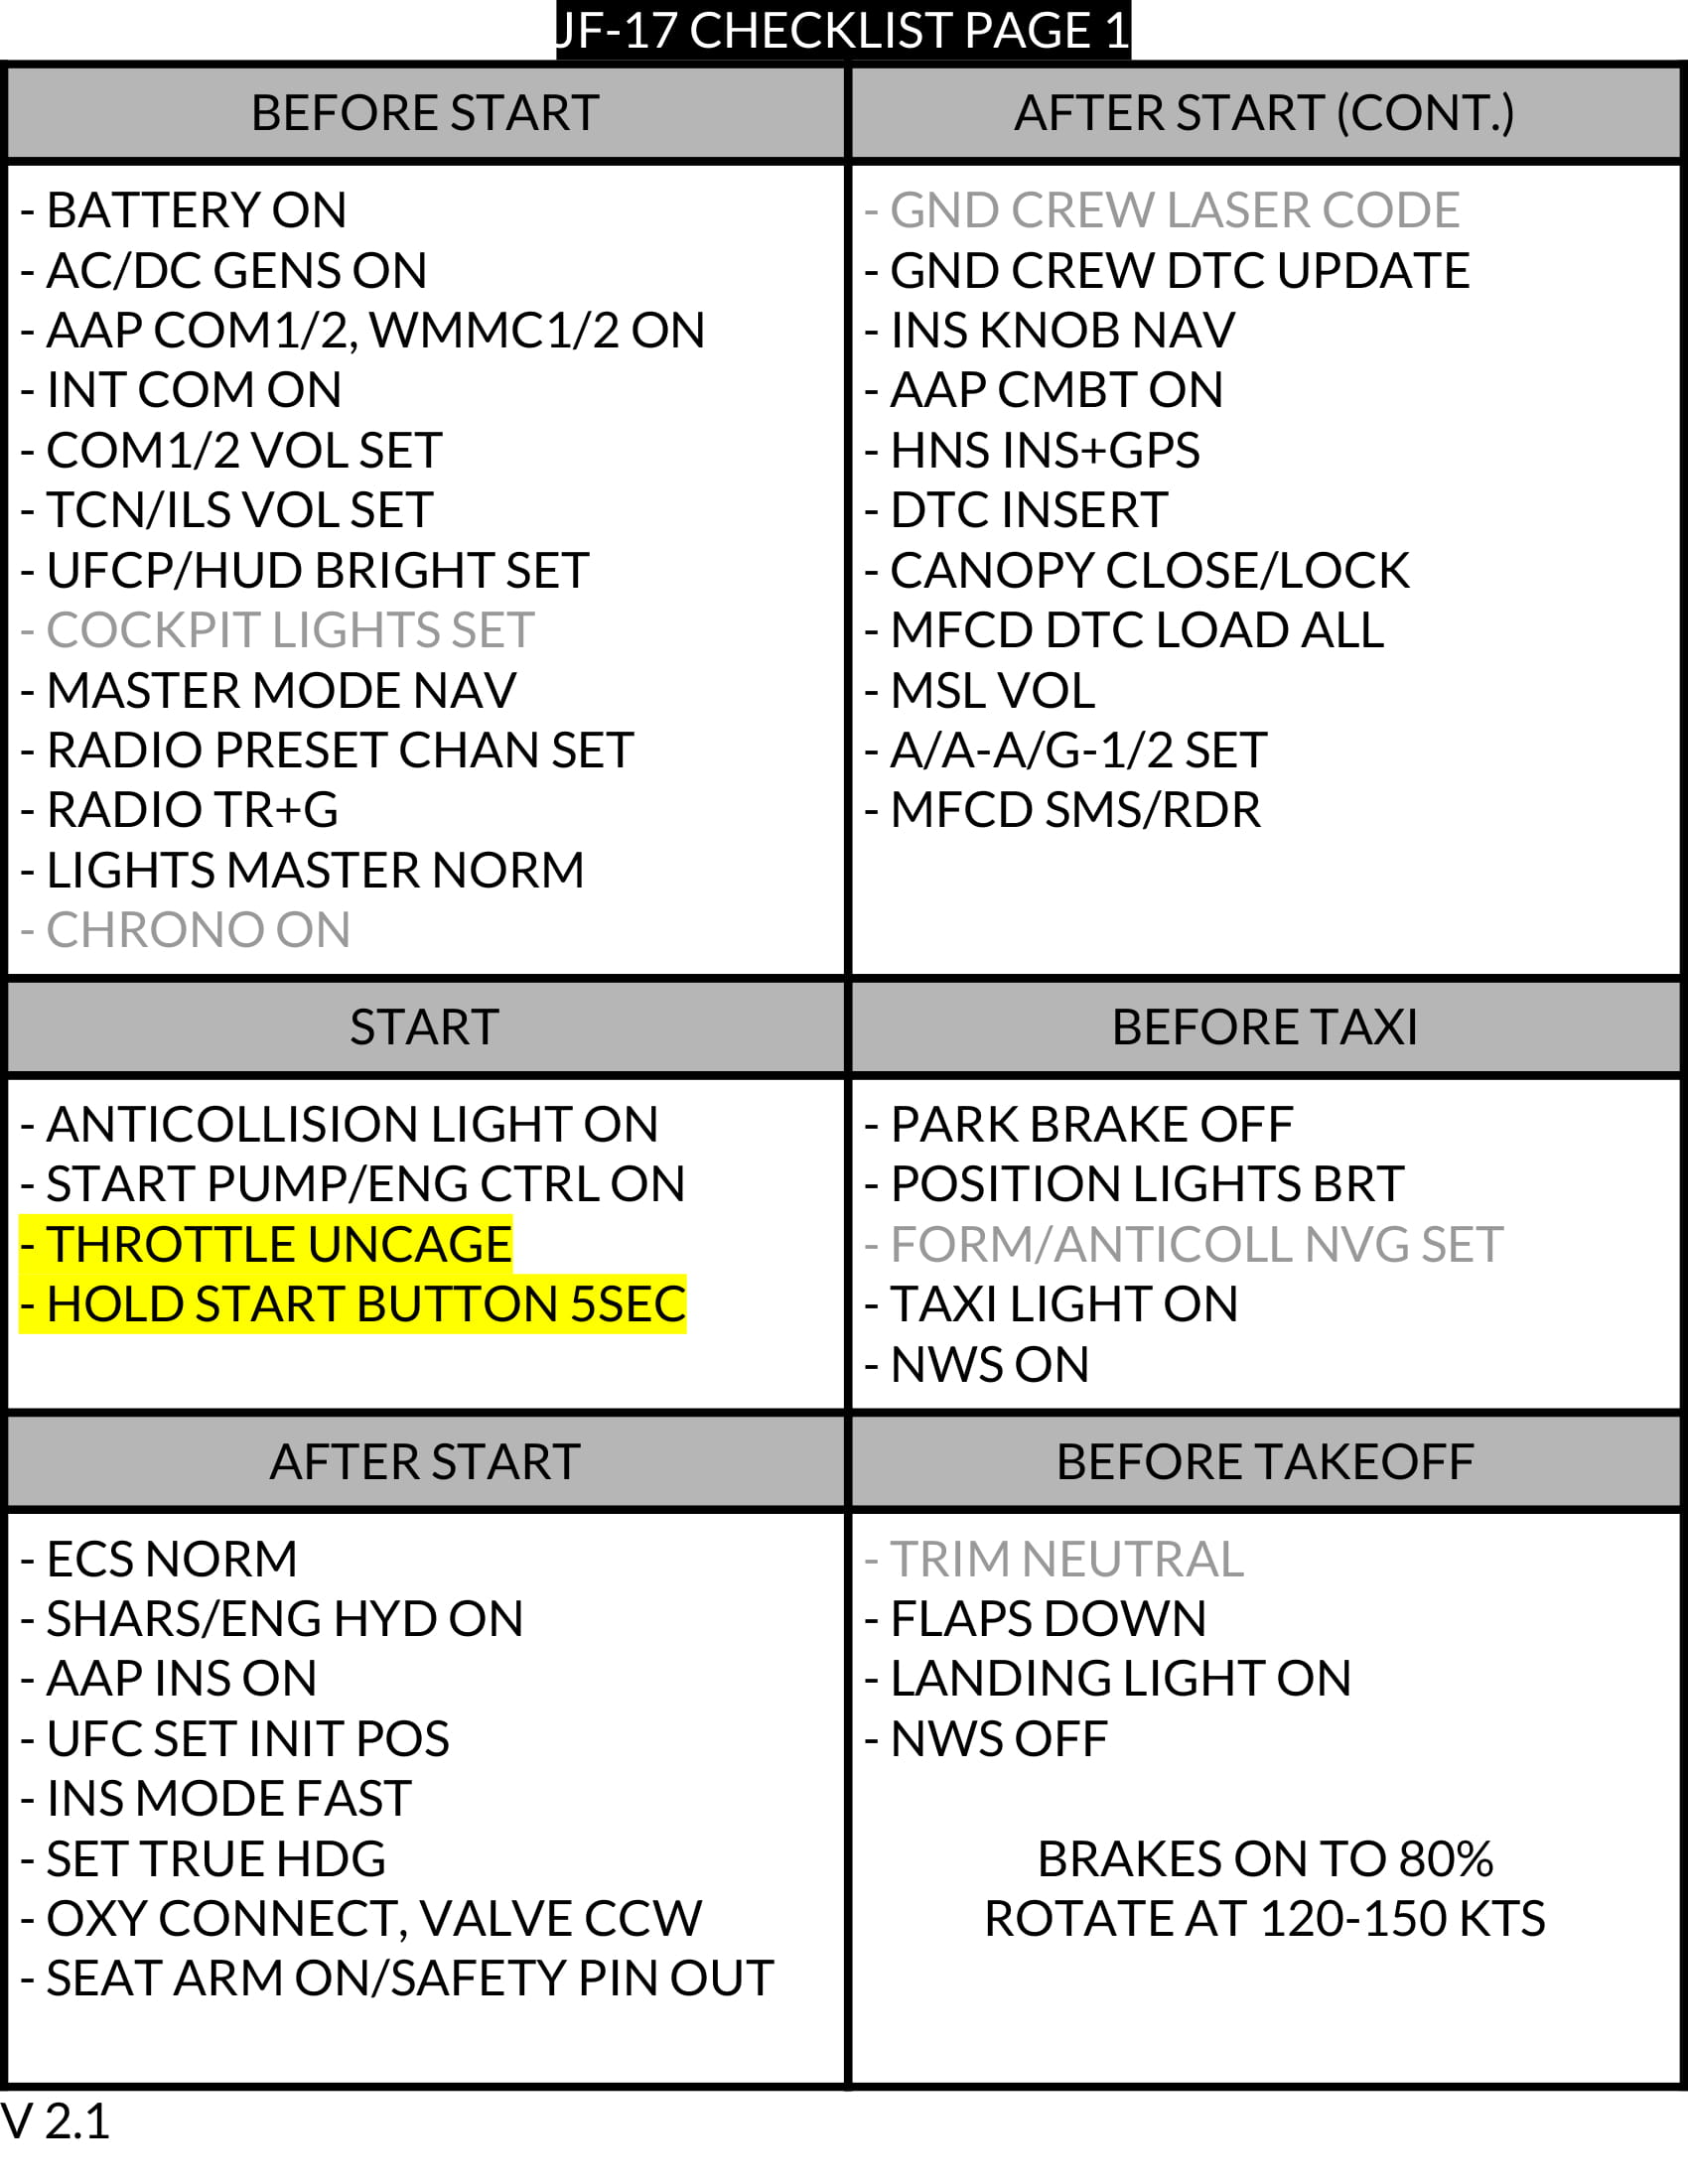 JF-17 Enhanced Checklist v2.1